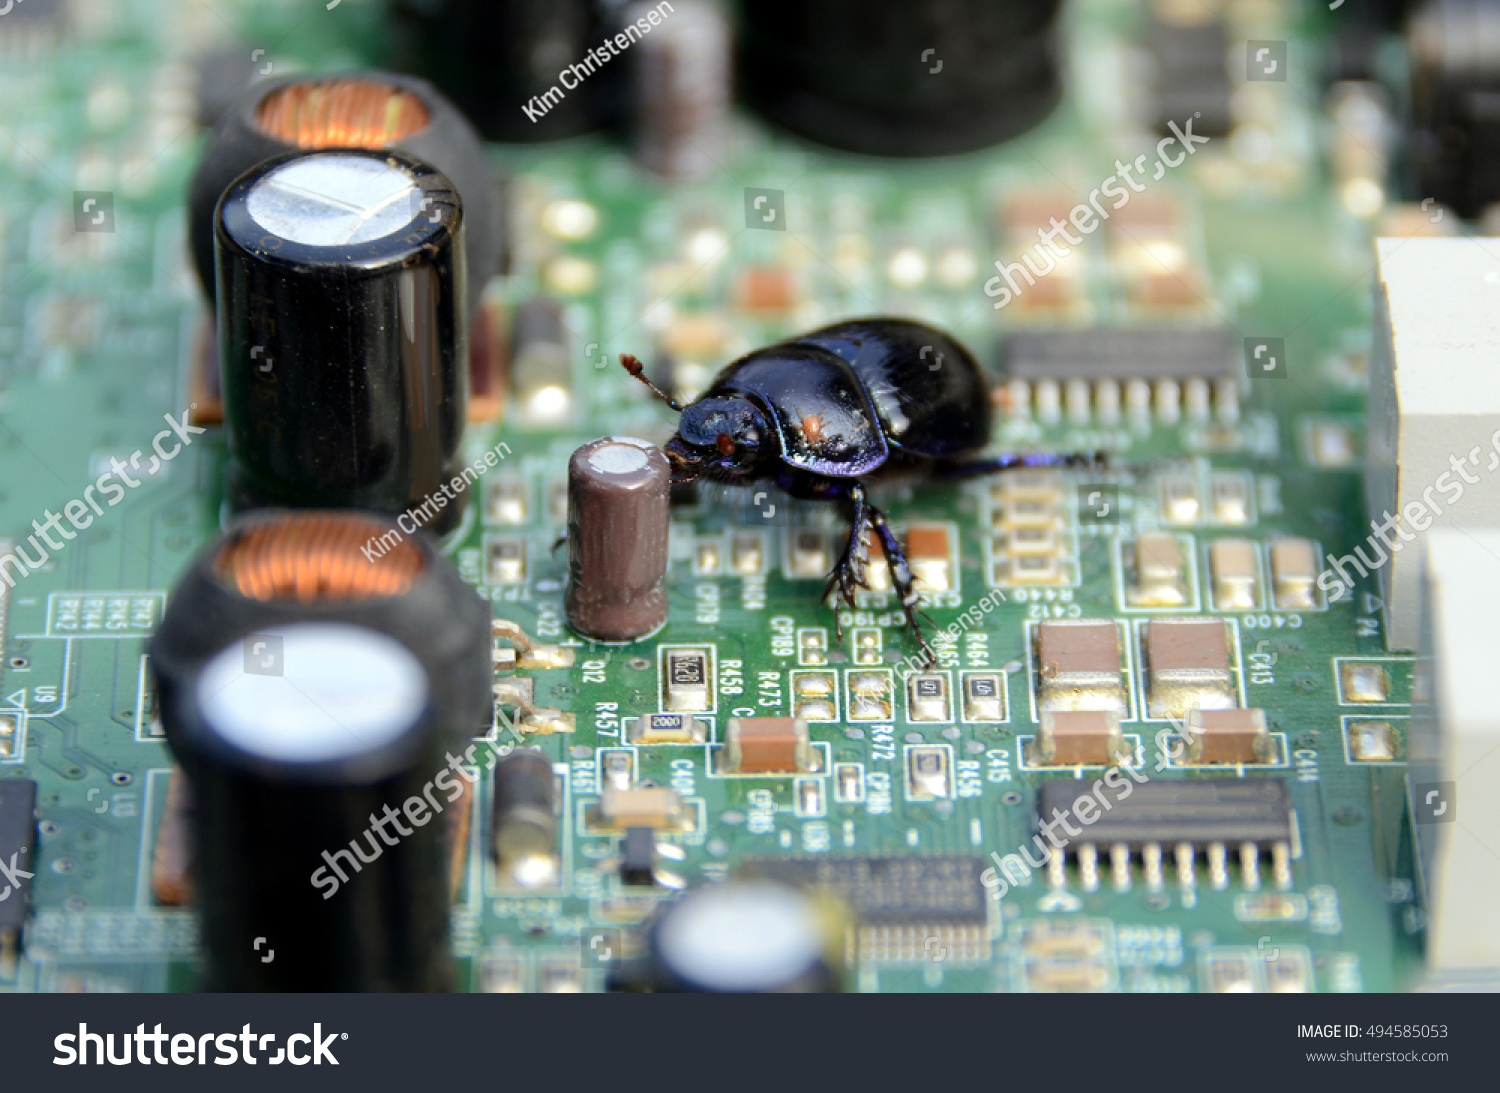 Bug Walks On Printed Circuit Board Stock Photo Edit Now 494585053 As Before We Can Copy The Onto A And Suggesting Have